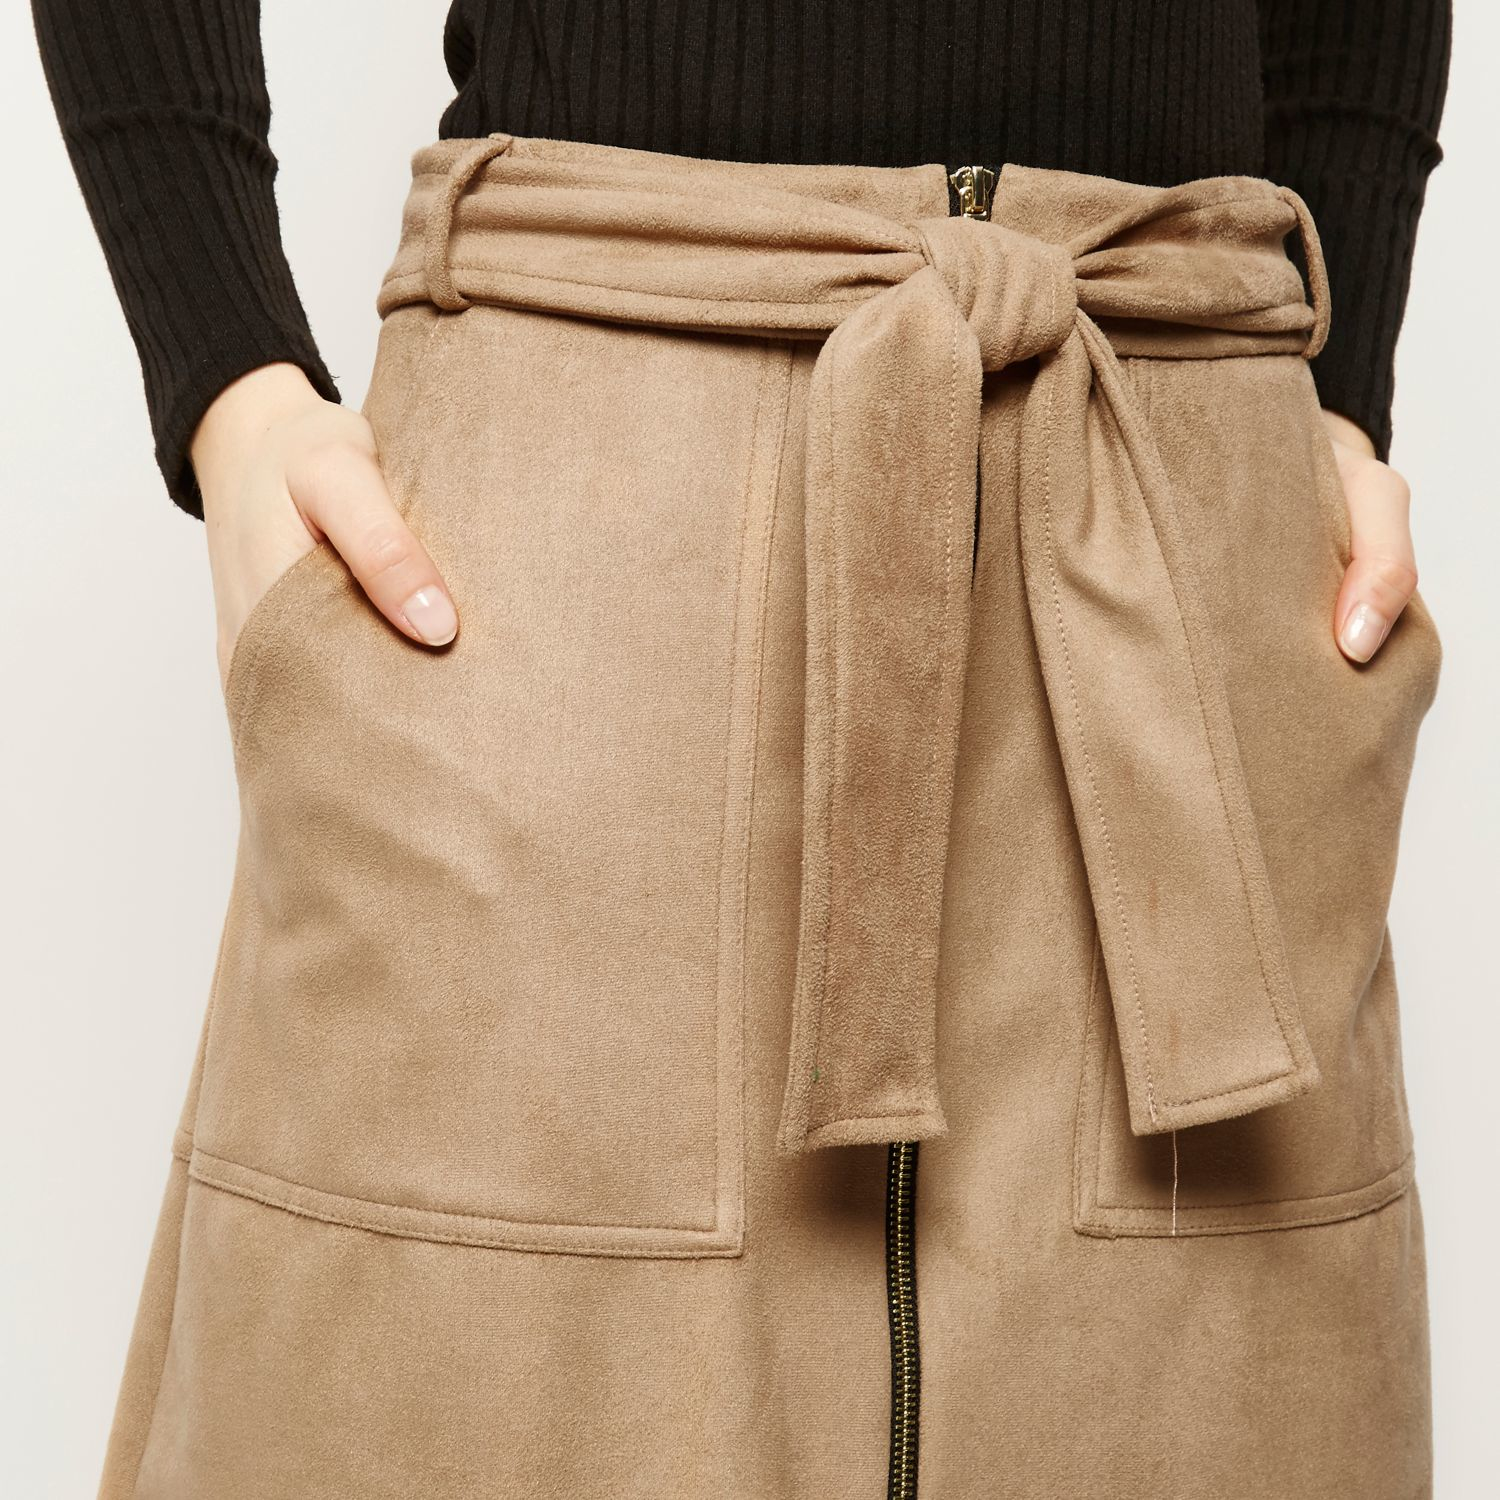 Tan a line skirt – Fashionable skirts 2017 photo blog